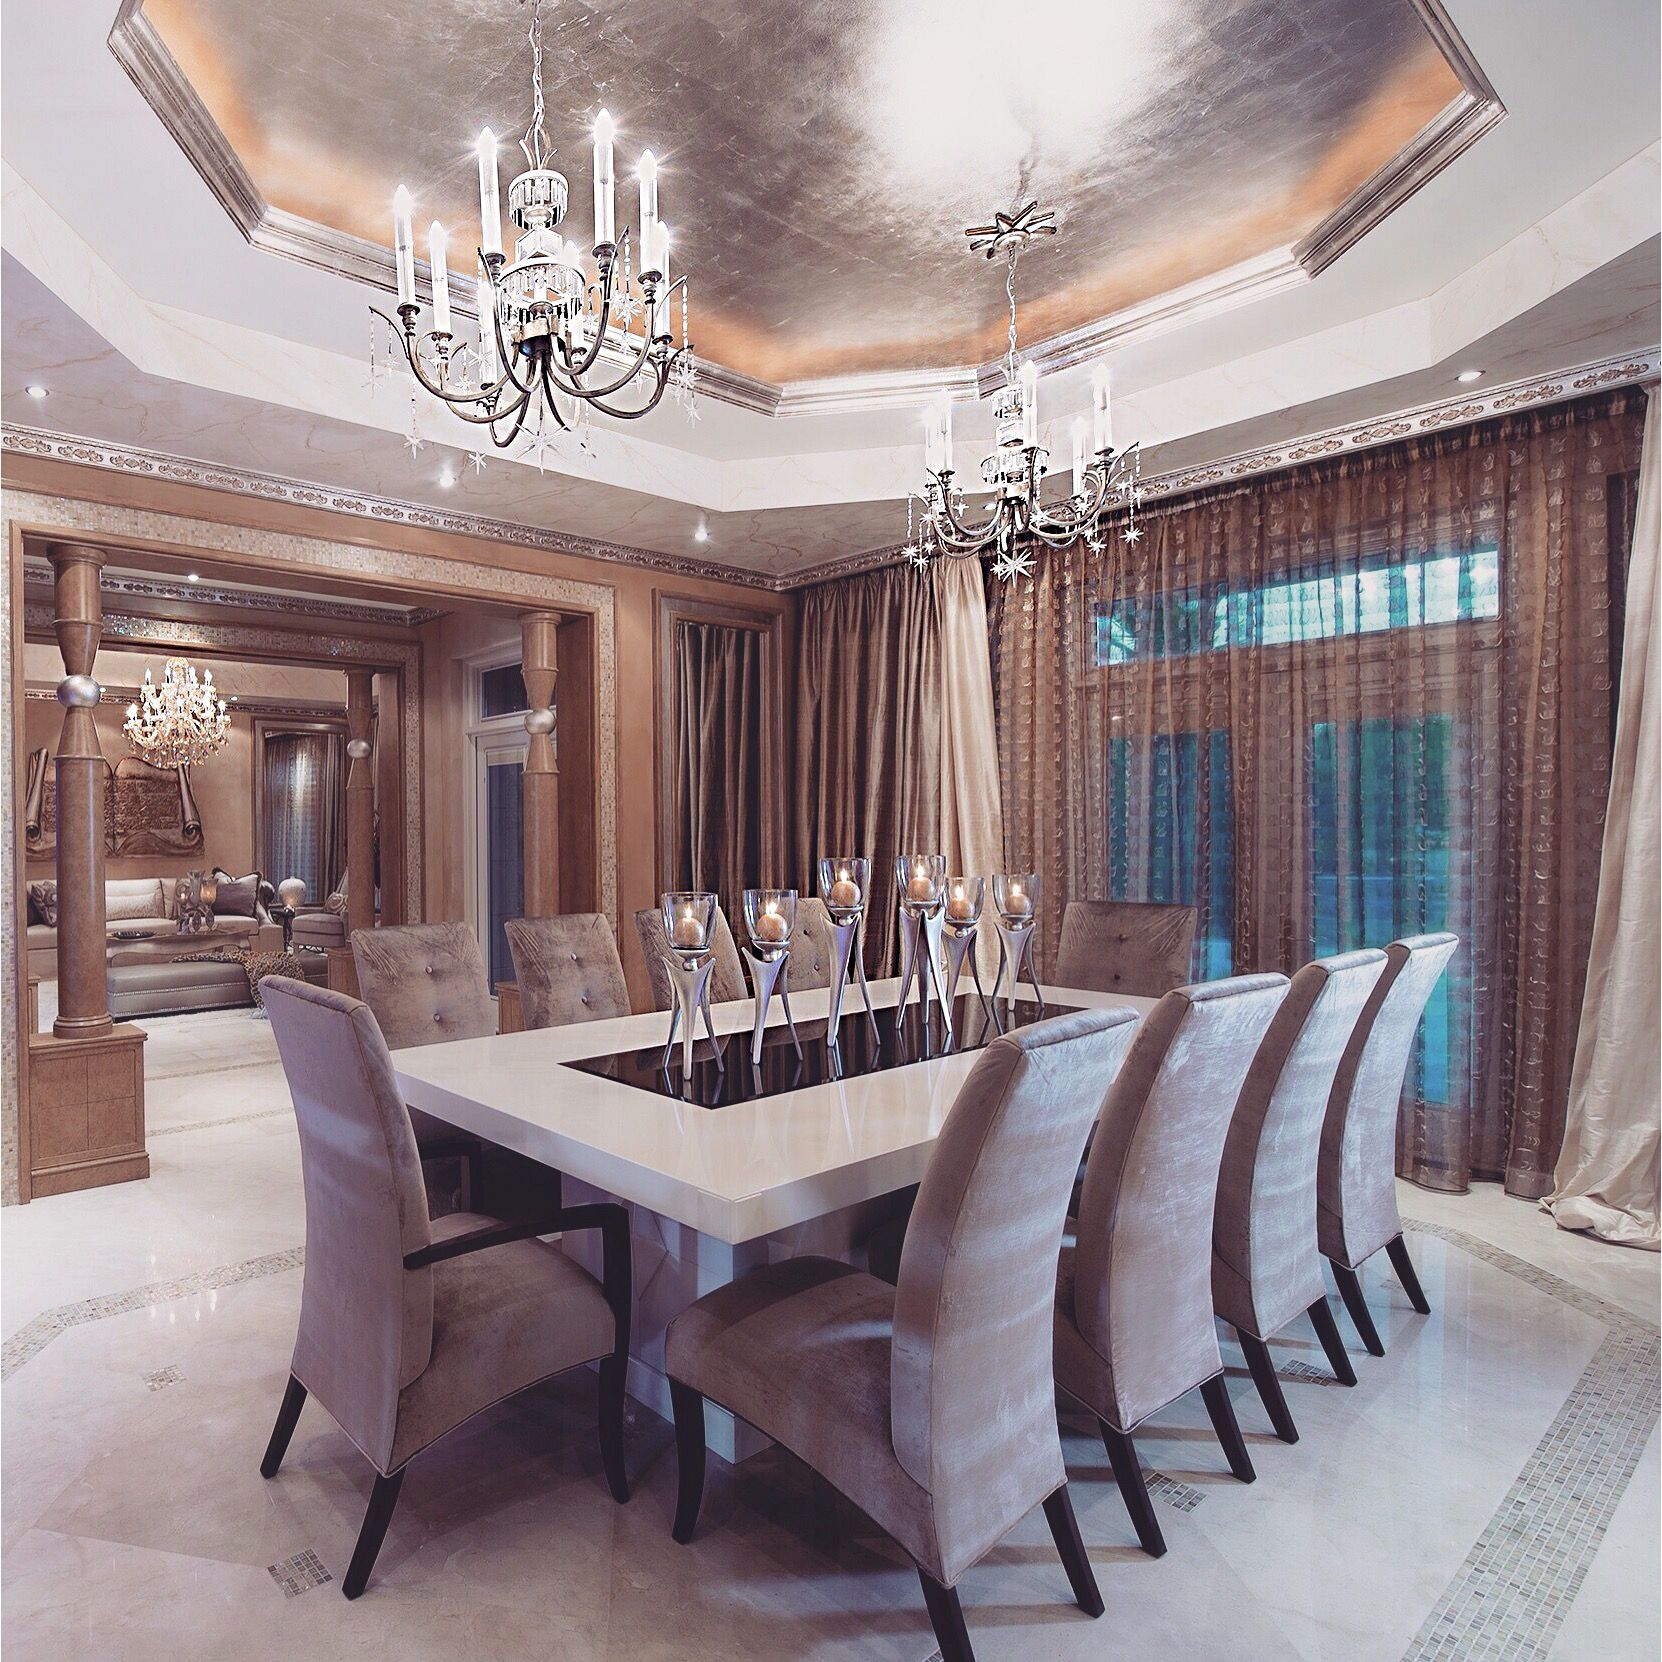 Pinterest Amatilhadelobos Dream House Rooms Luxury Dining Room House Interior